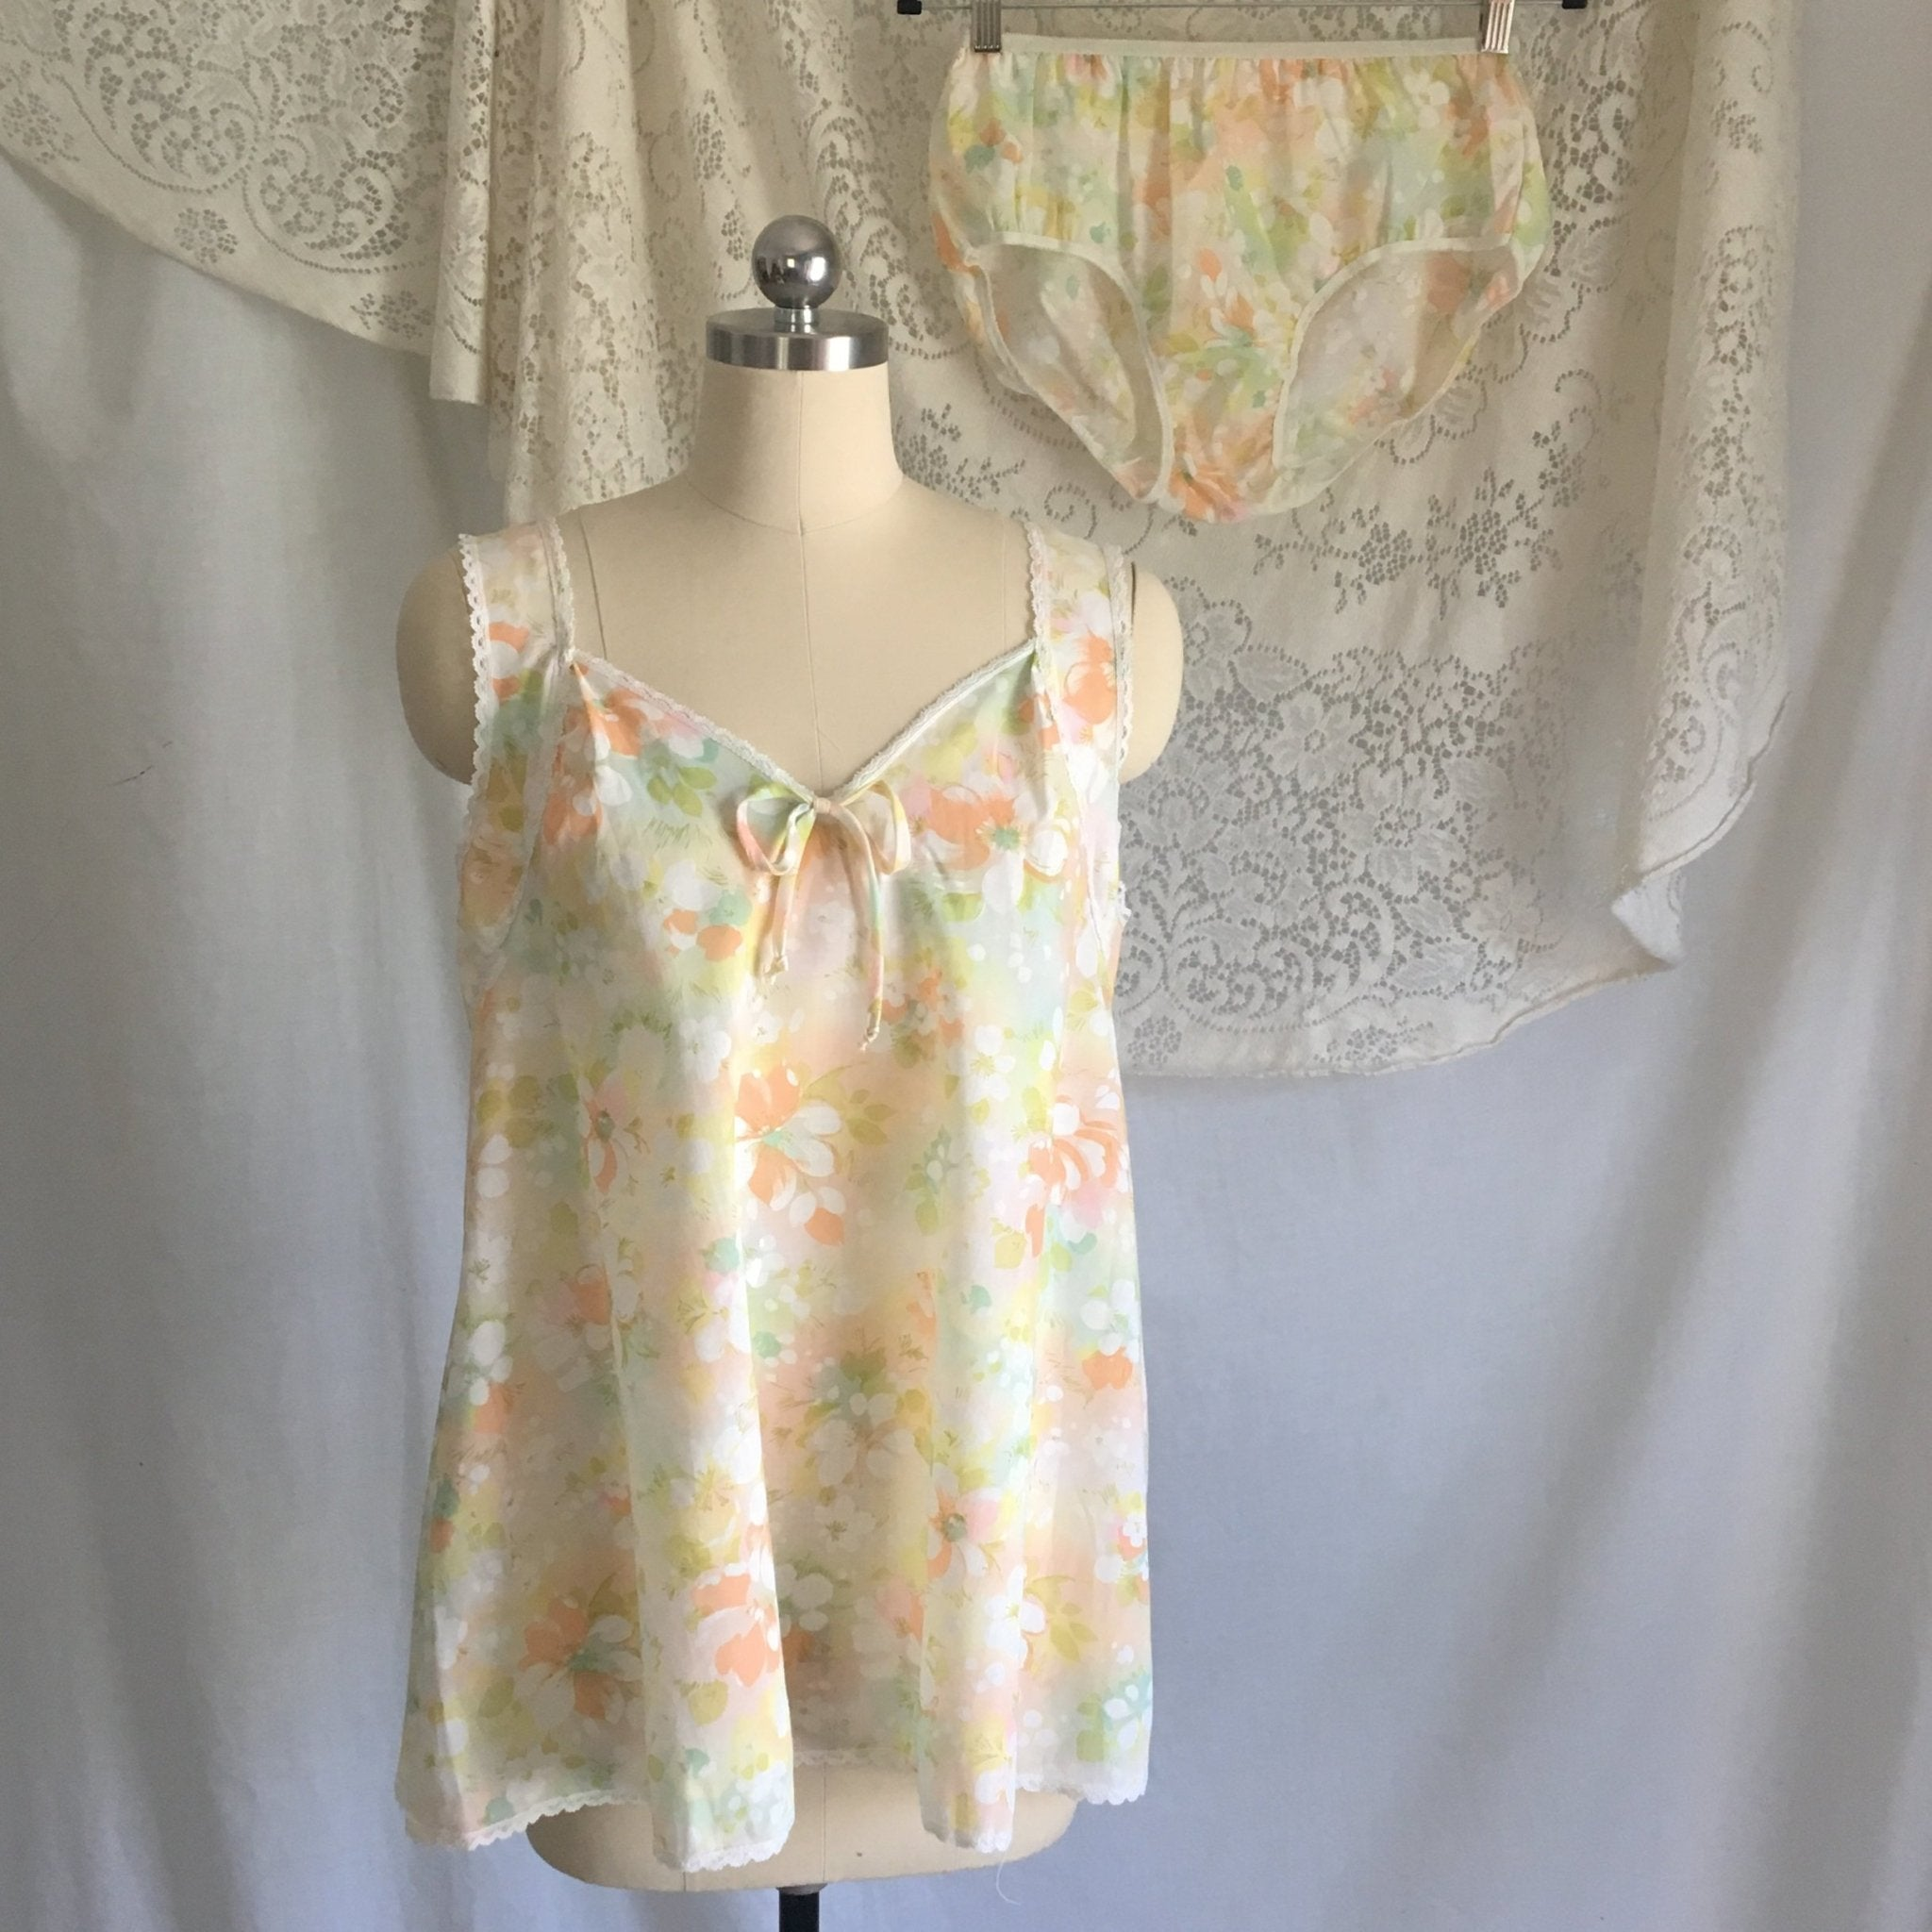 Vintage 1970's Babydoll & Panty Set | Sheer White with Watercolor Floral Pattern and Lace | New Old Stock Lingerie | Size M - Daggers & Dames